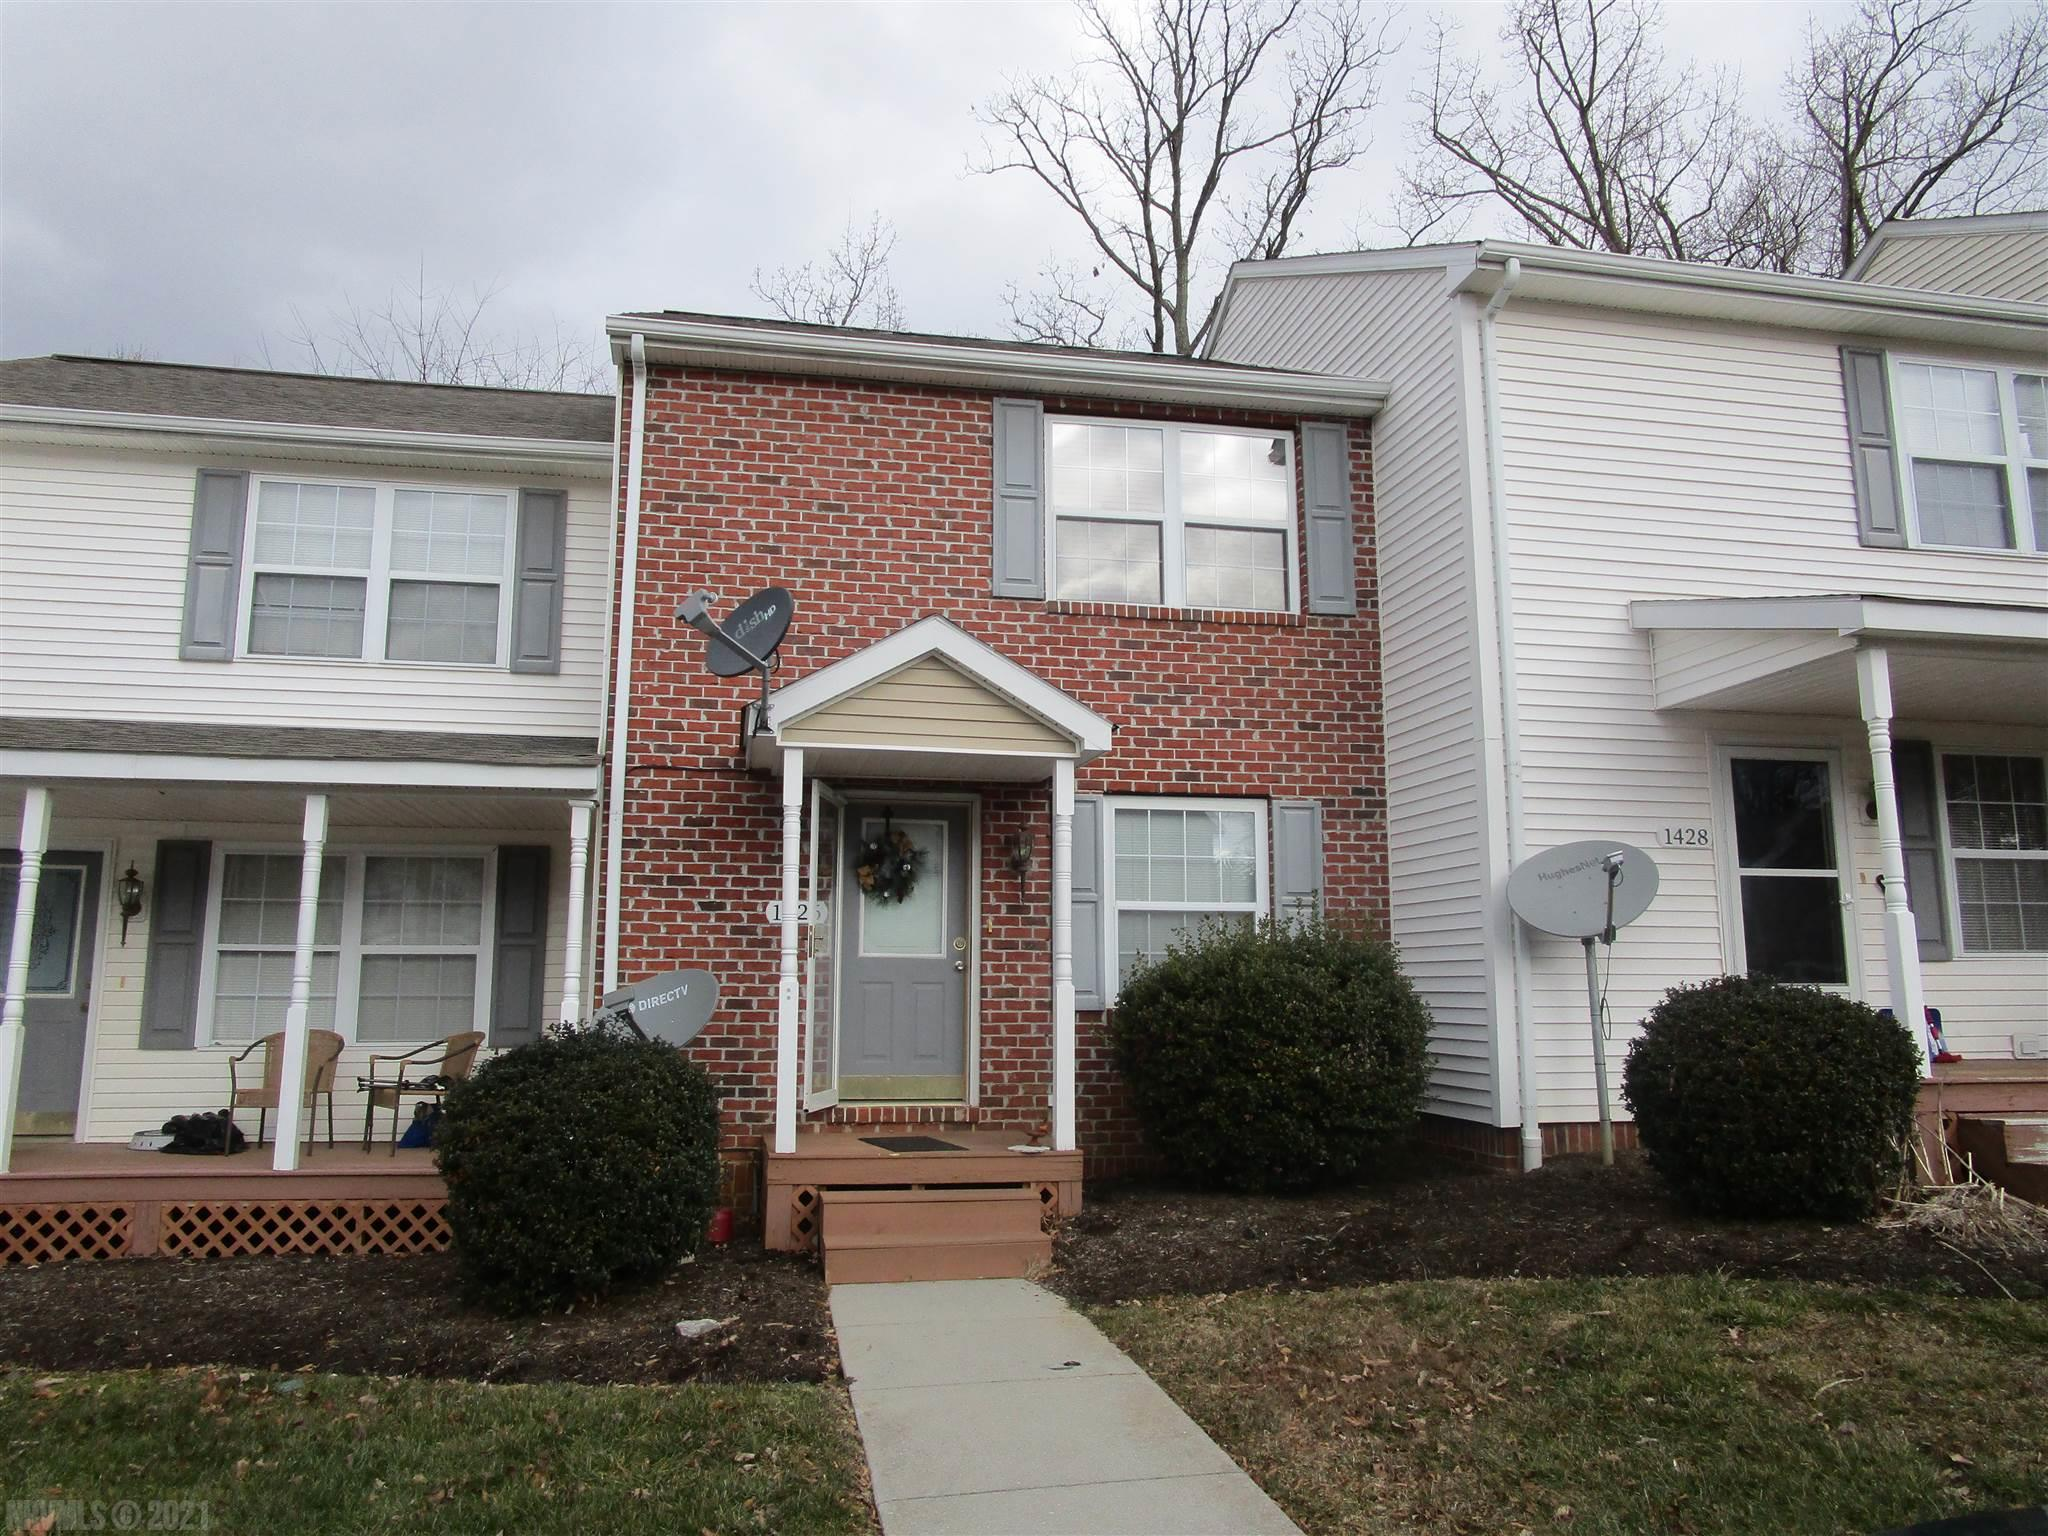 This Beautiful 2 Bedroom 1.5 Bath Home  Is situated right in the Heart of Christiansburg. Close to Food and Shopping and alot of the  Local Attractions. This Town Home has a Brick front and a Concrete Walkway right from your Parking spot in the Front. The Back of the Town Home has a Private Back Deck. The Town Home has a Heat Pump and is Move in ready. Inside on the Main Level. You have a Living Room with New Laminate Flooring, you have a dining room, a Kitchen with Newer Stainless Appliances a Half Bath off of the Kitchen and a Laundry area with a newer washer and Dryer. Upstairs you have 2 Big Bedrooms with Many closets and a Full Bathroom. Come By and Check out this Town Home Today. It won't last long.